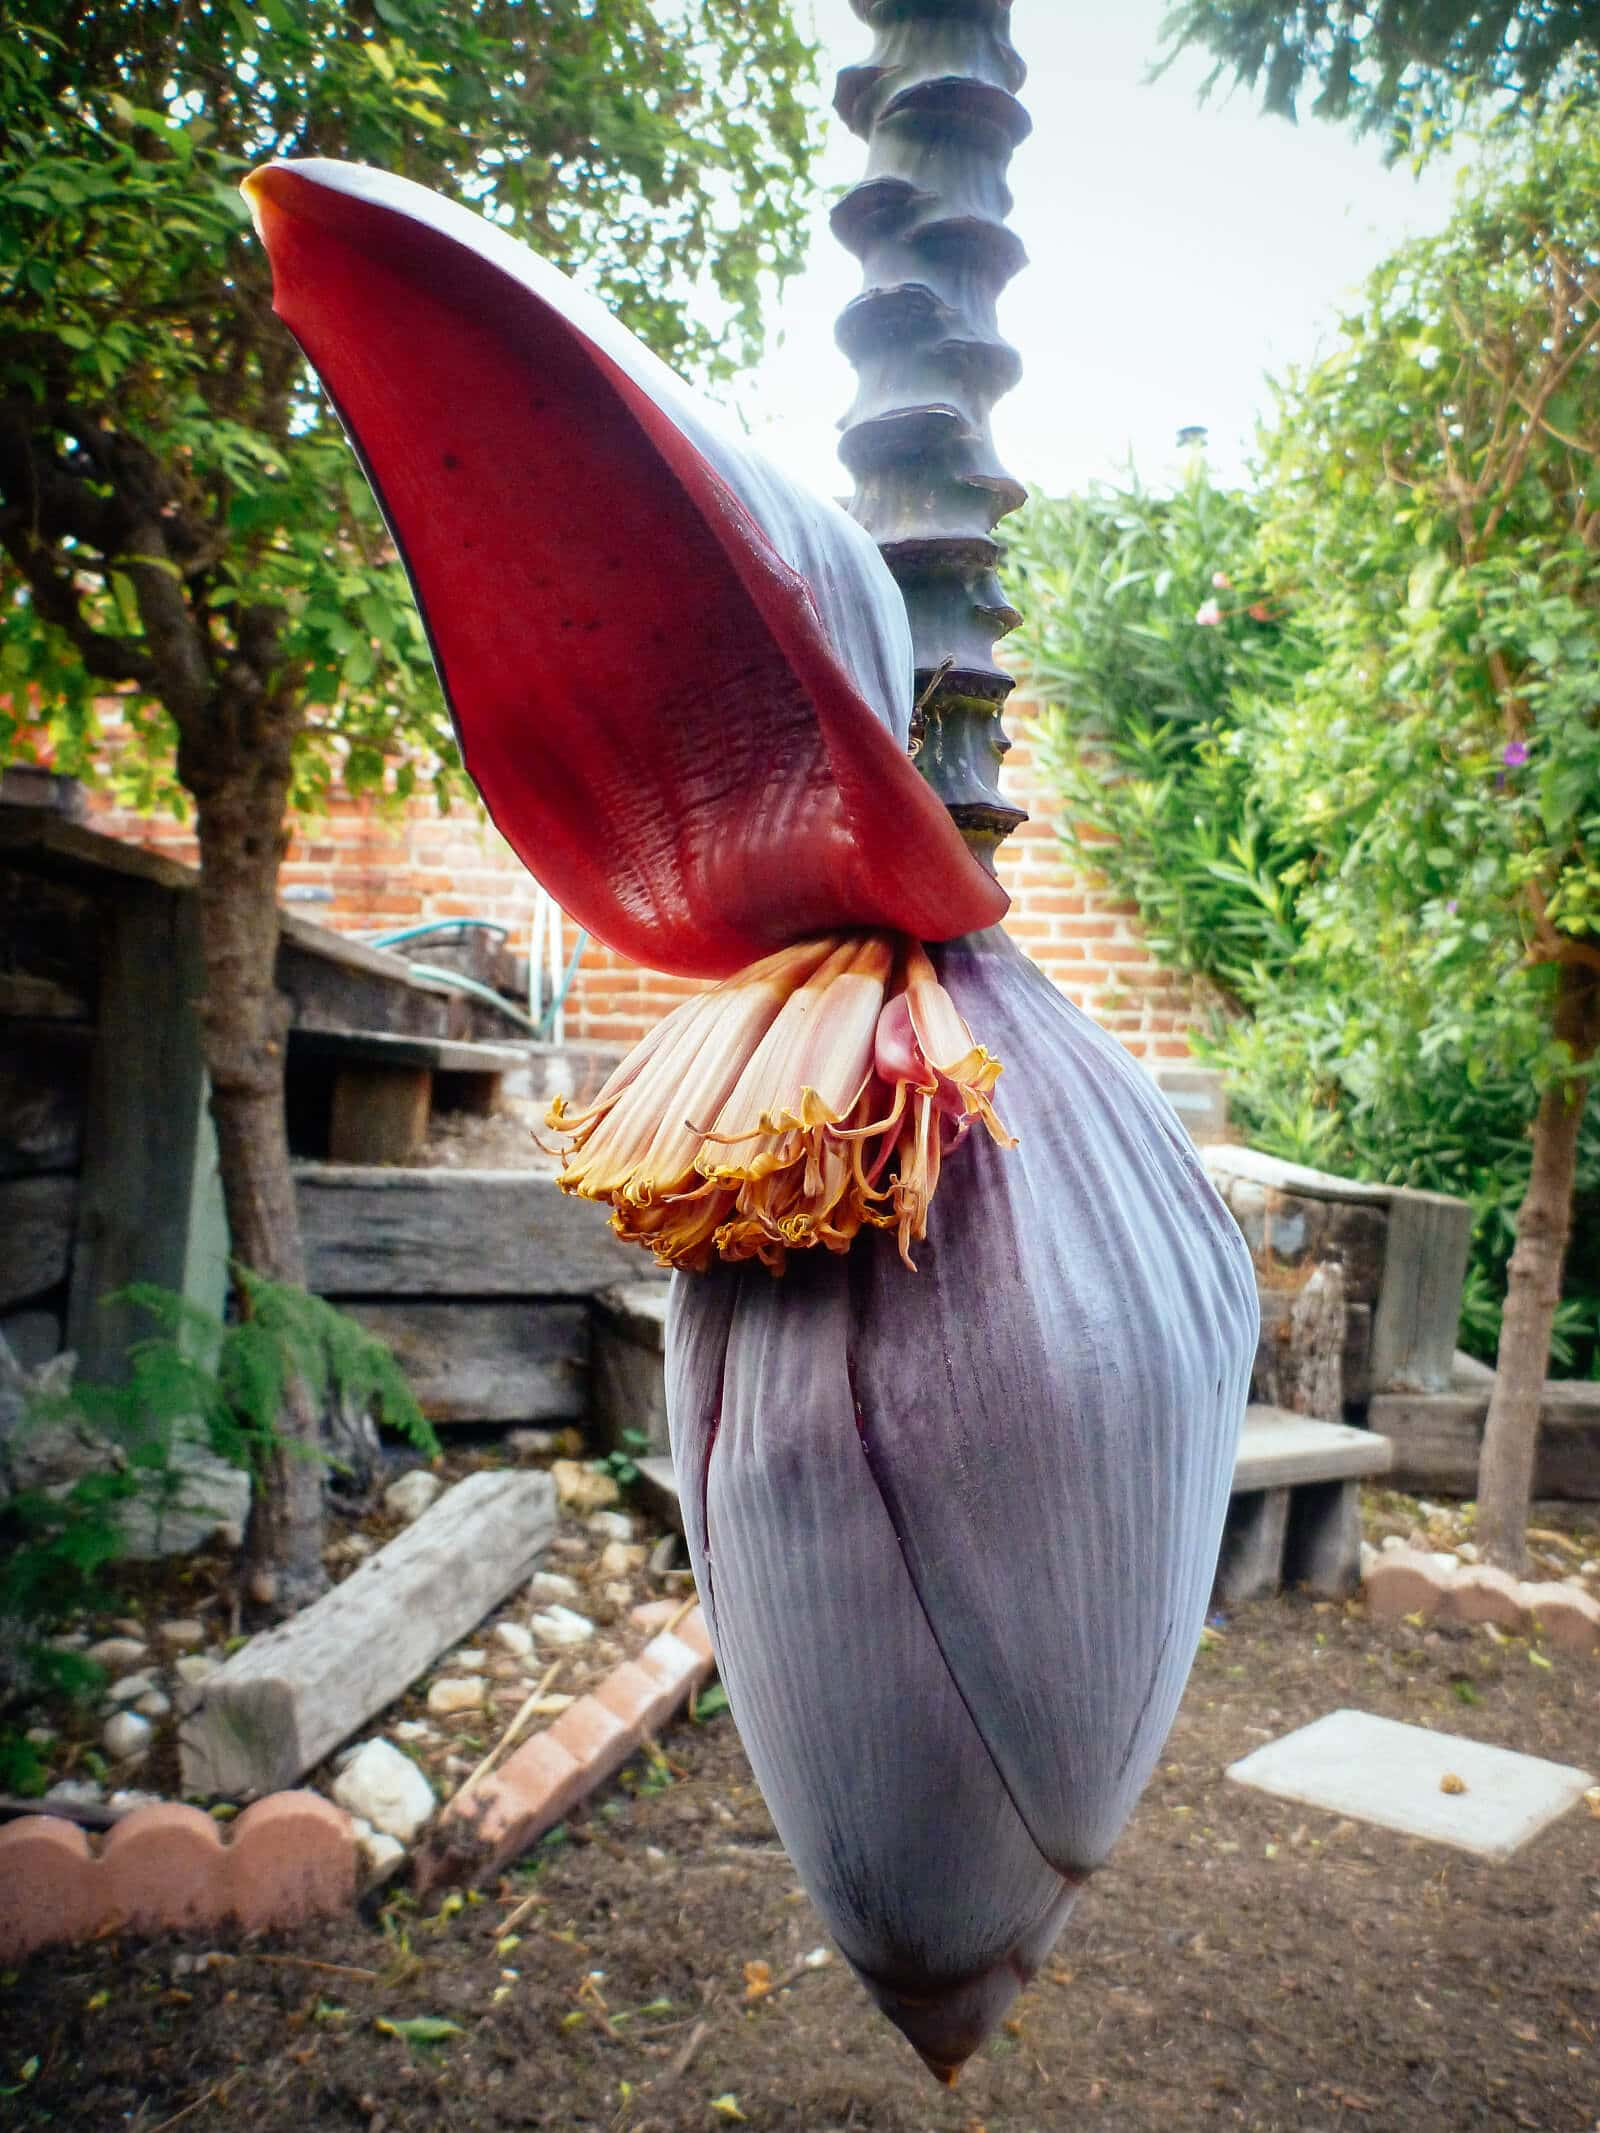 Each petal (bract) of the banana heart opens to reveal double rows of banana blossoms